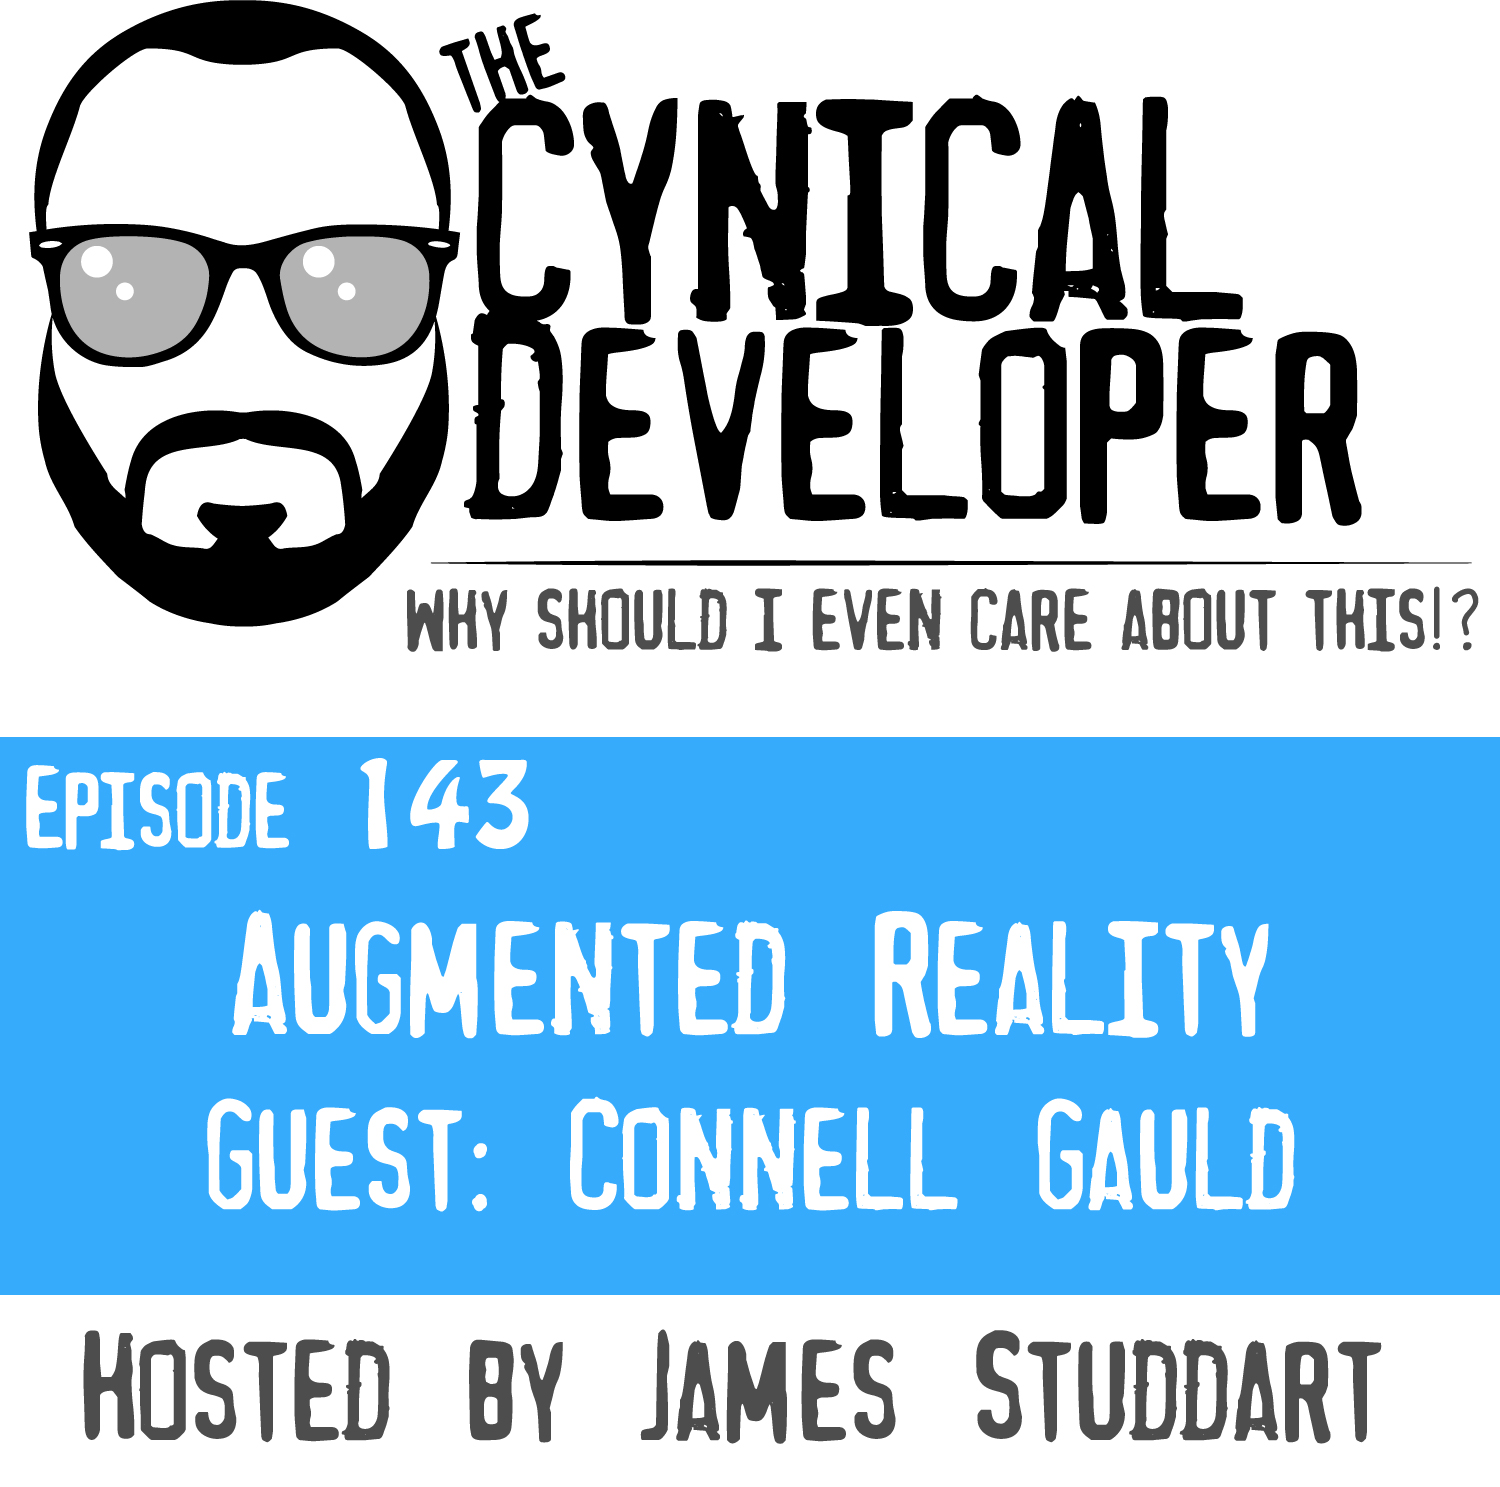 Episode 143 - Augmented Reality